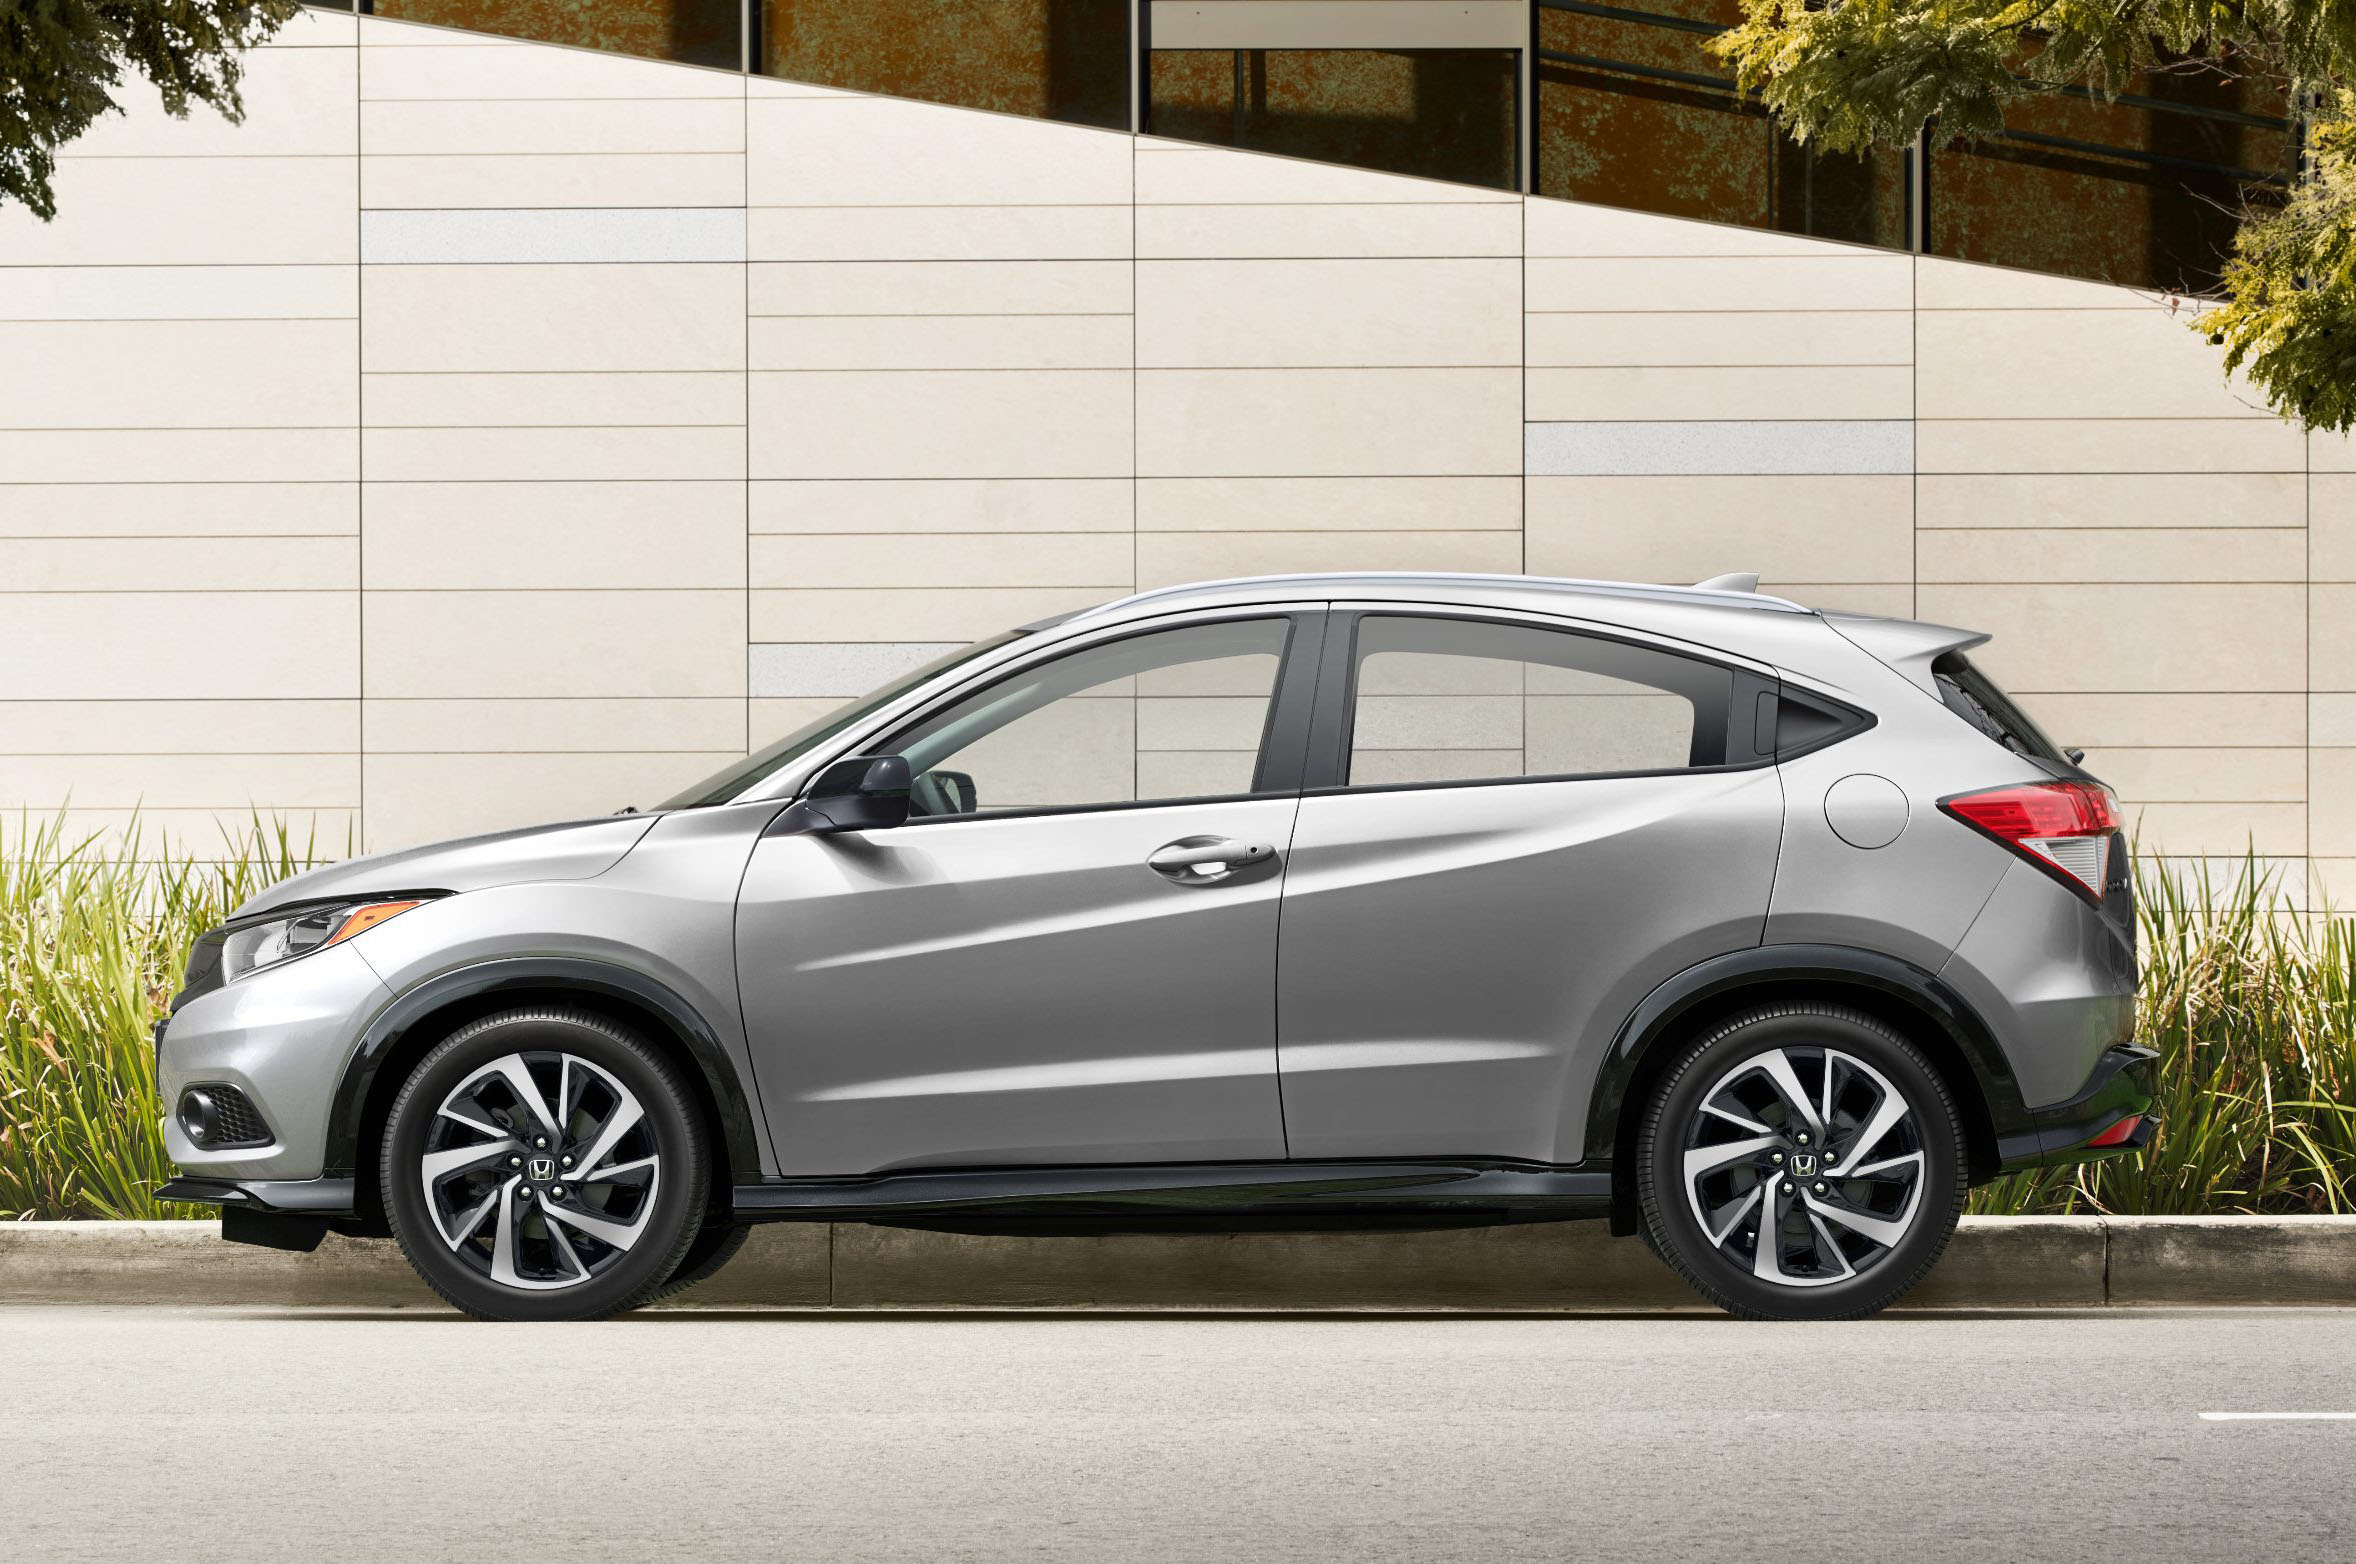 Honda HR-V 2019, disponible desde $21,515 dólares - Motor ...